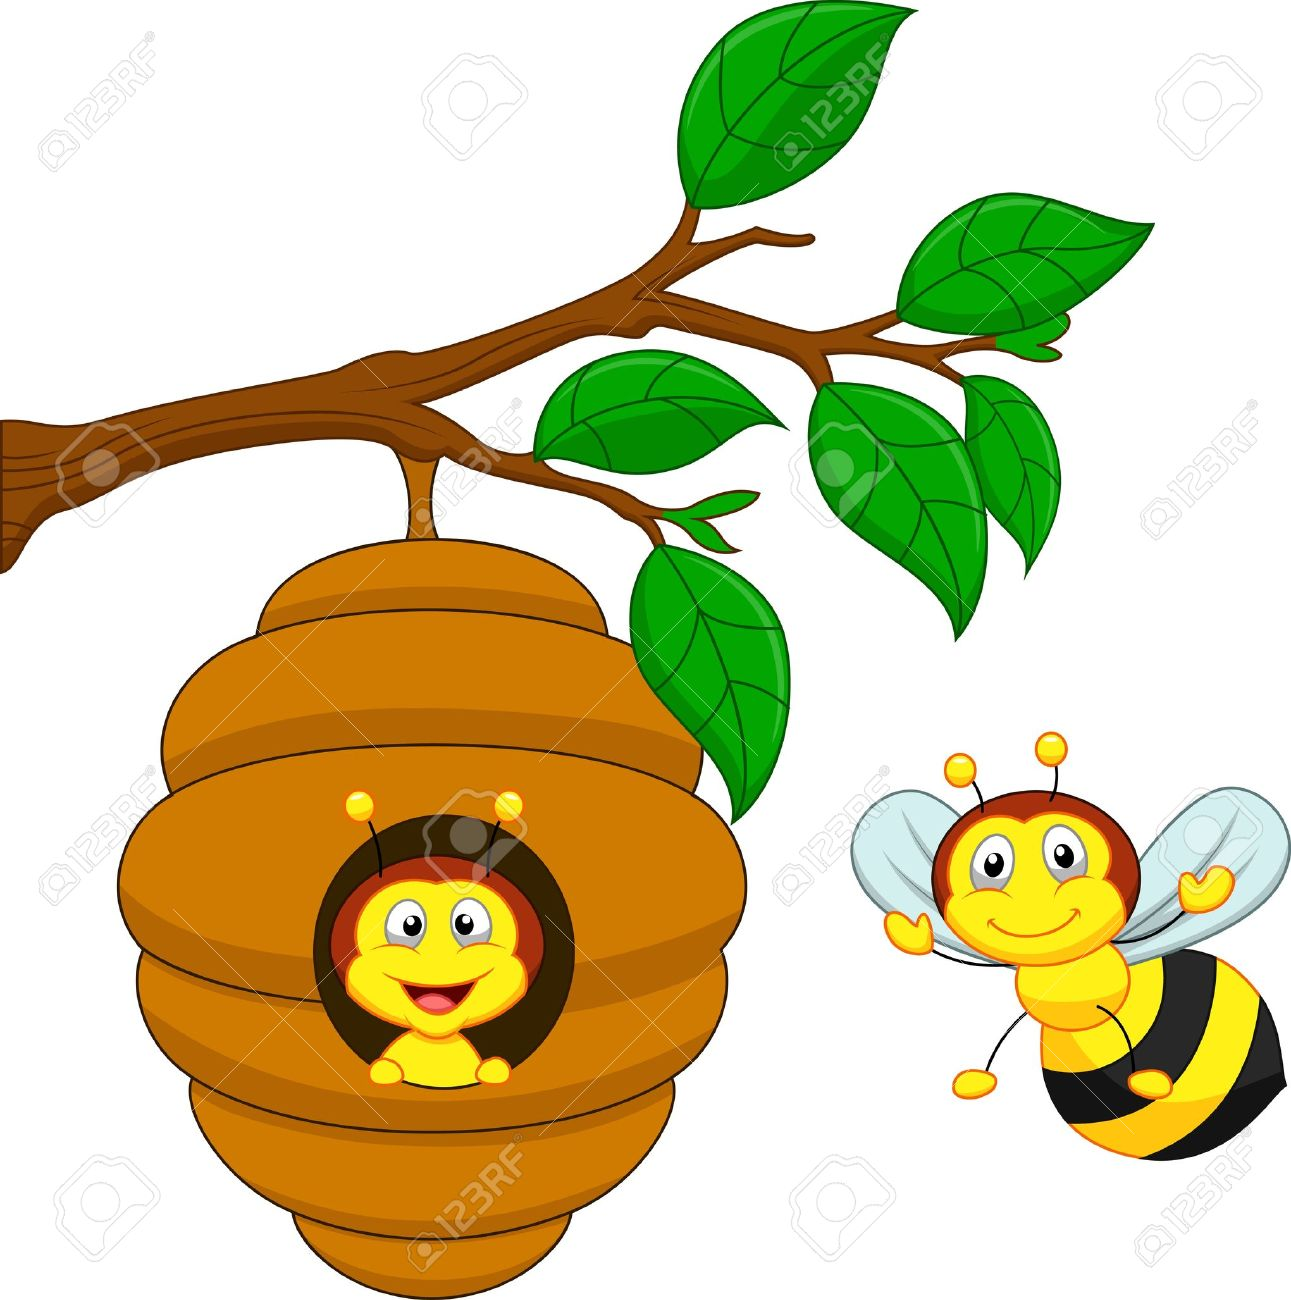 Honey bee hive clipart.